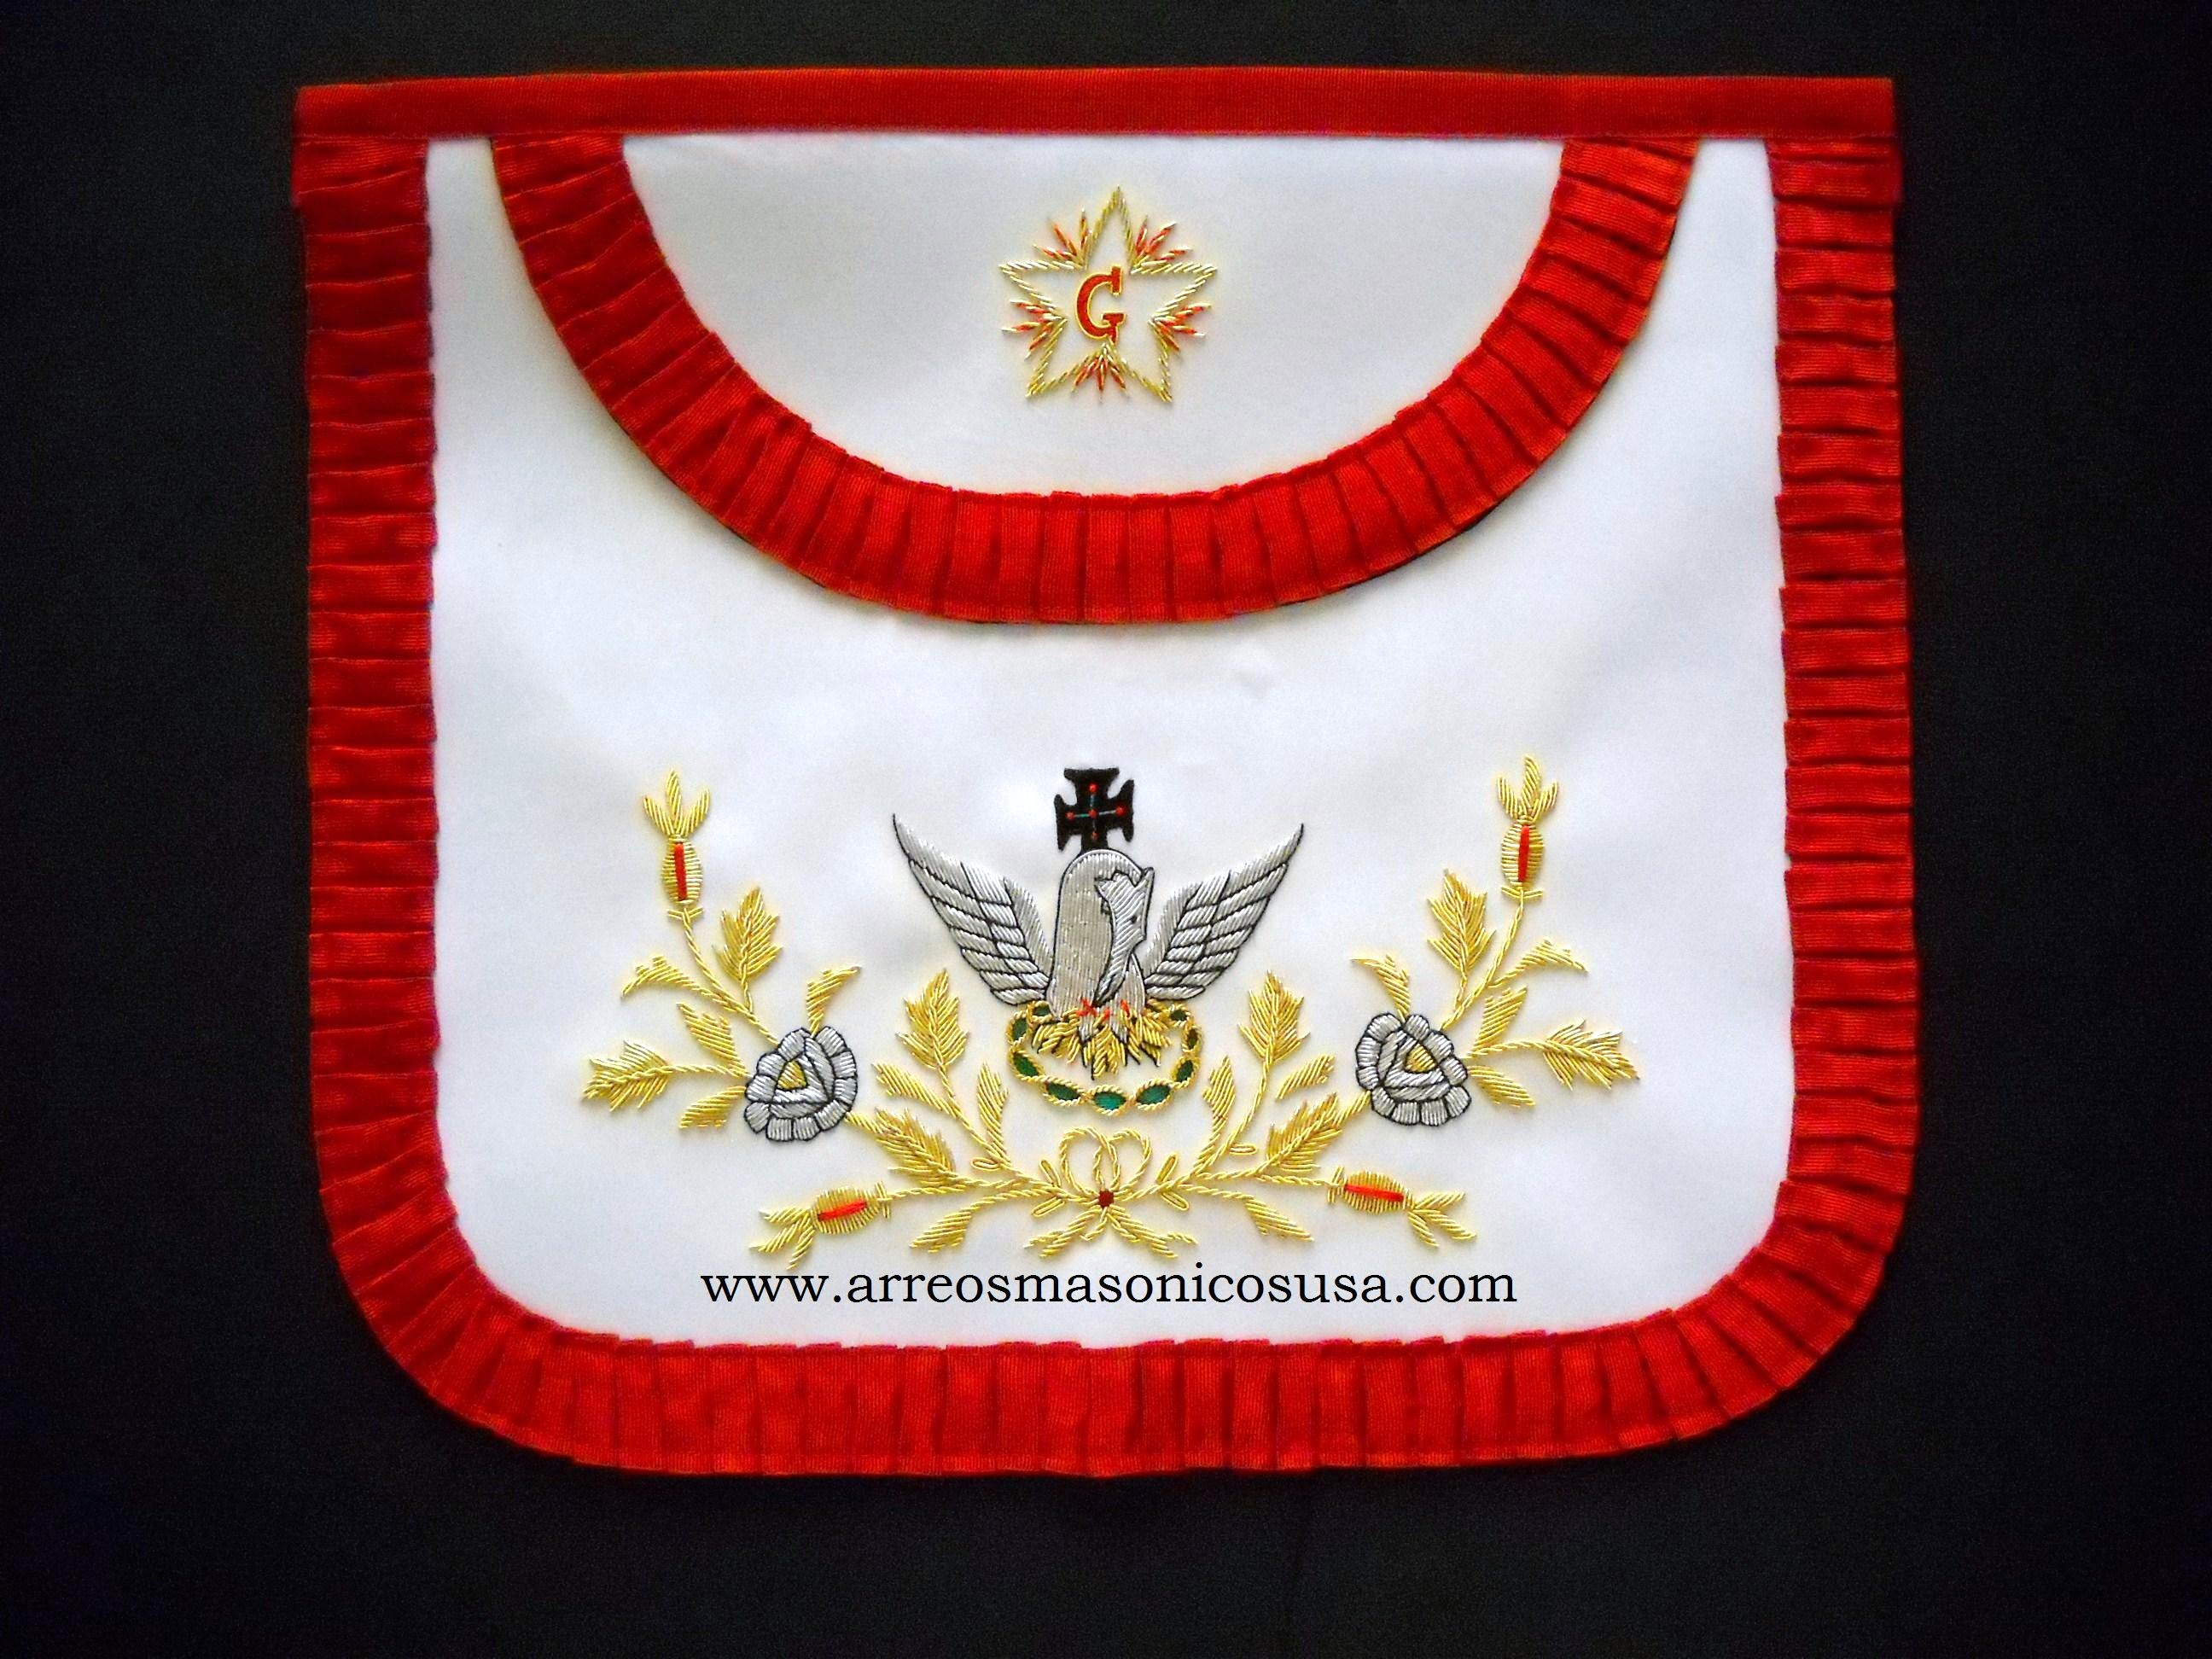 18TH Degree Masonic Apron 09